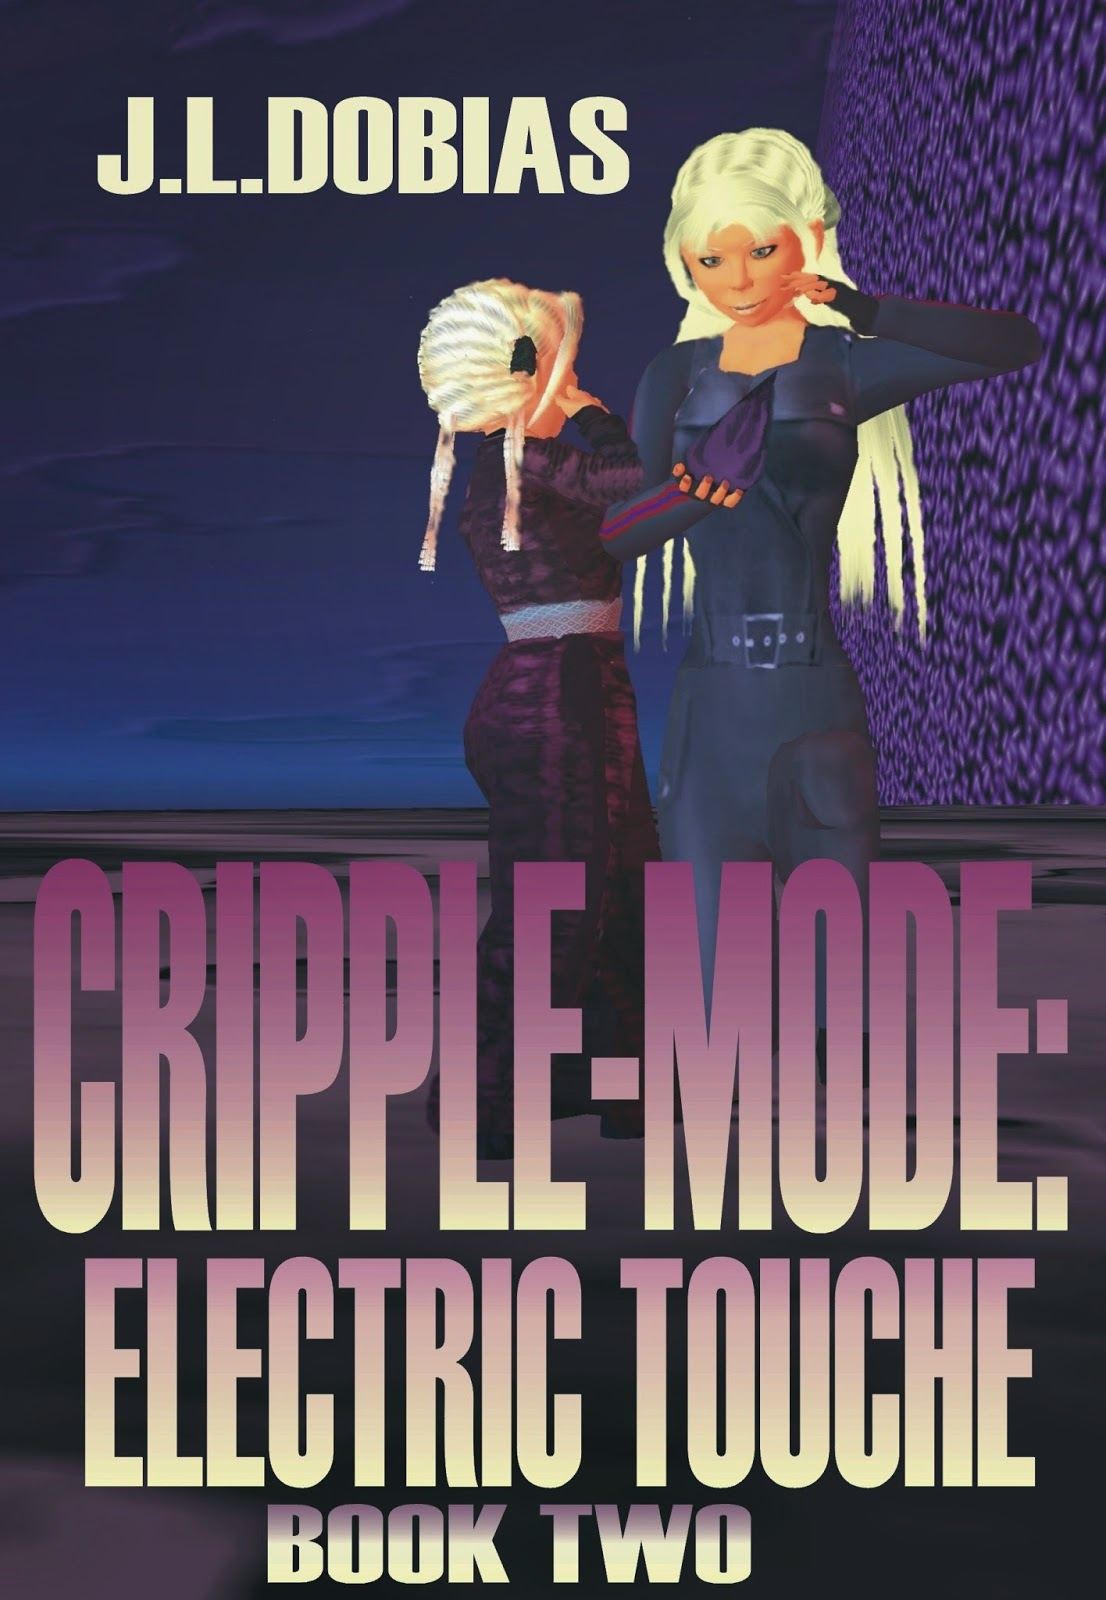 Cripple-Mode:Electric Touche